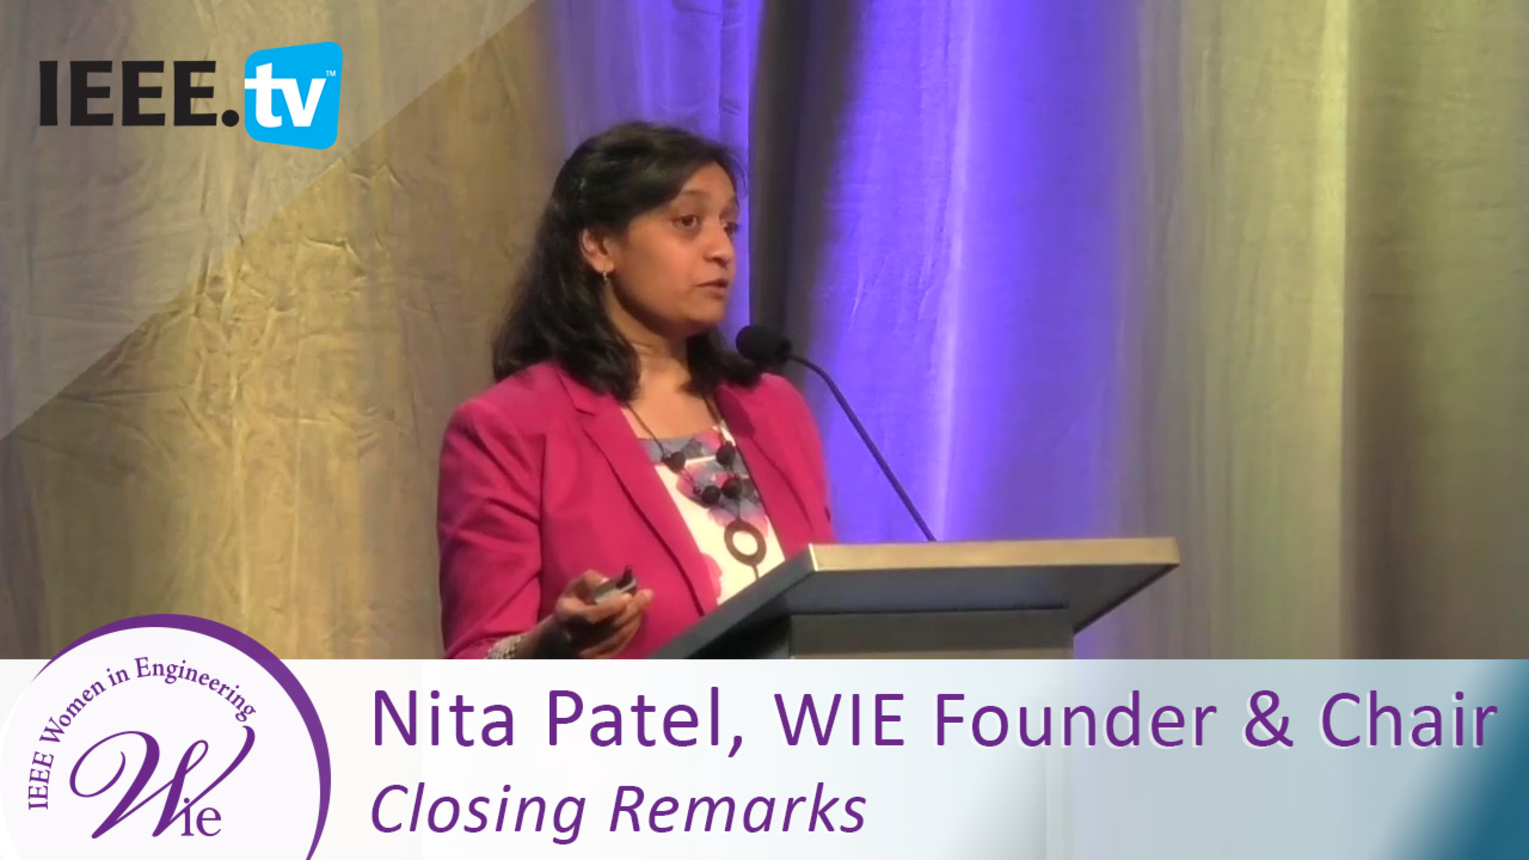 Nita Patel Closing Remarks - 2016 Women in Engineering Conference